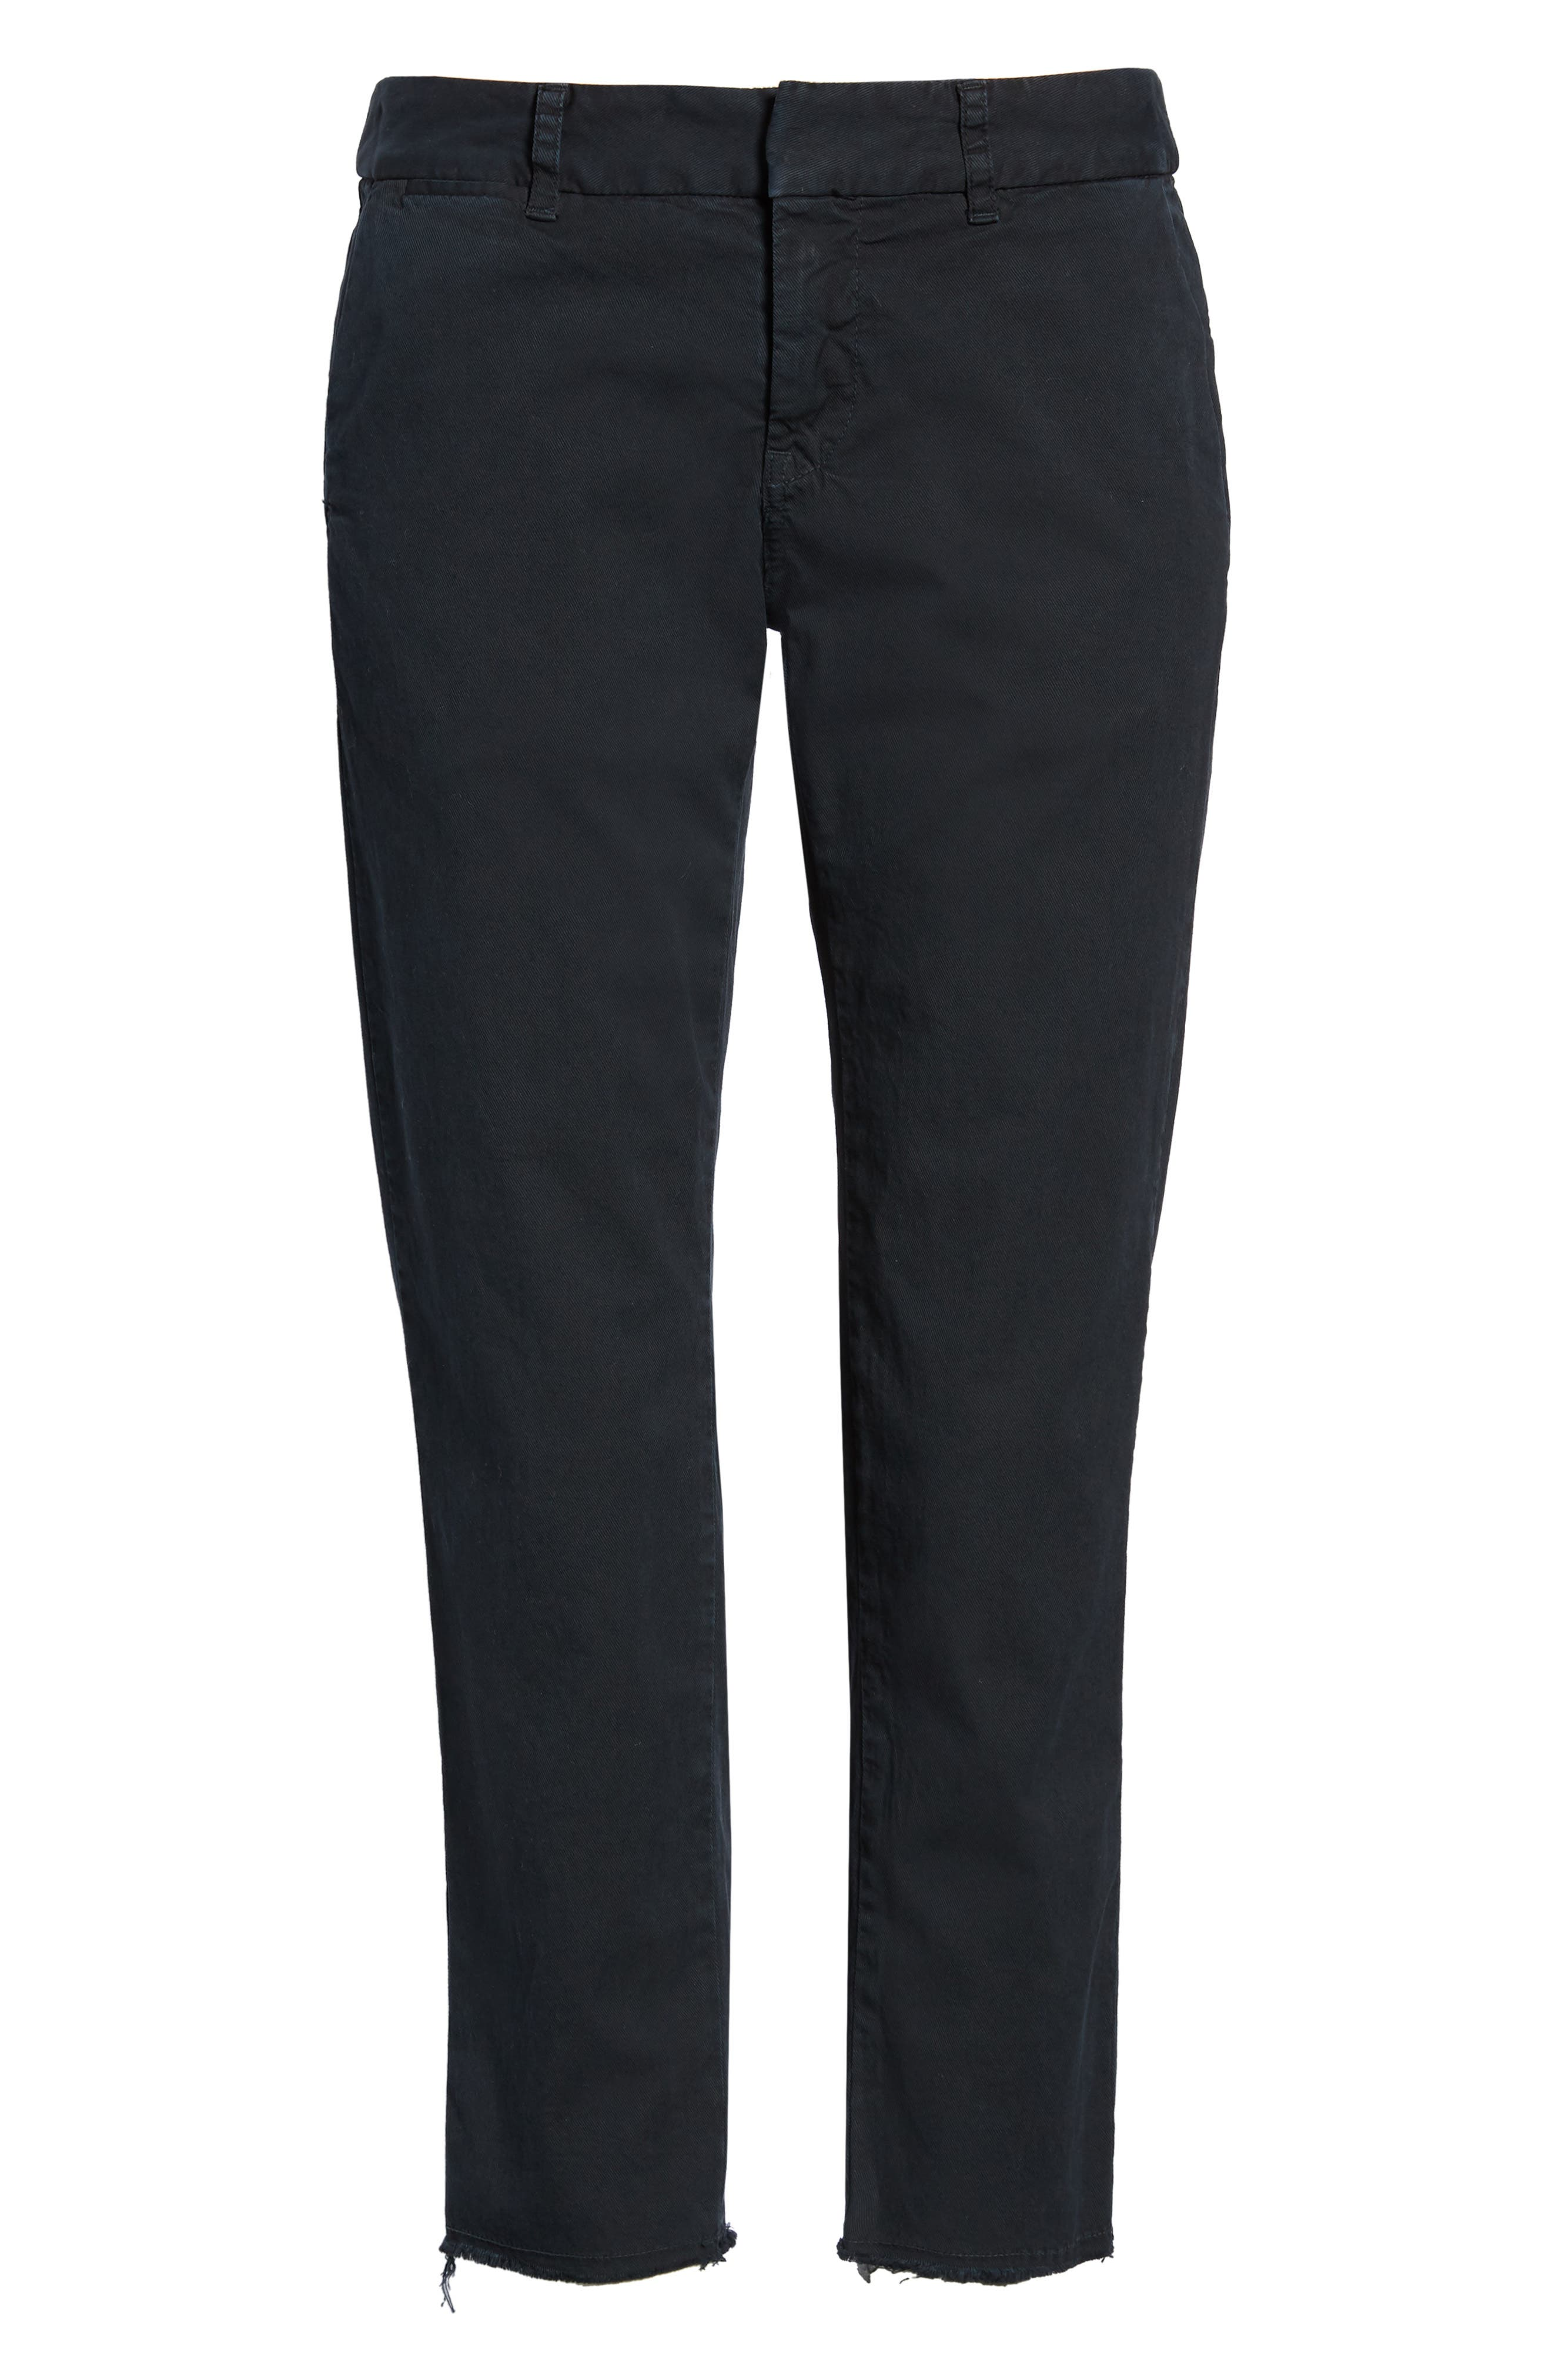 East Hampton Stretch Cotton Twill Crop Pants,                             Alternate thumbnail 7, color,                             DARK NAVY